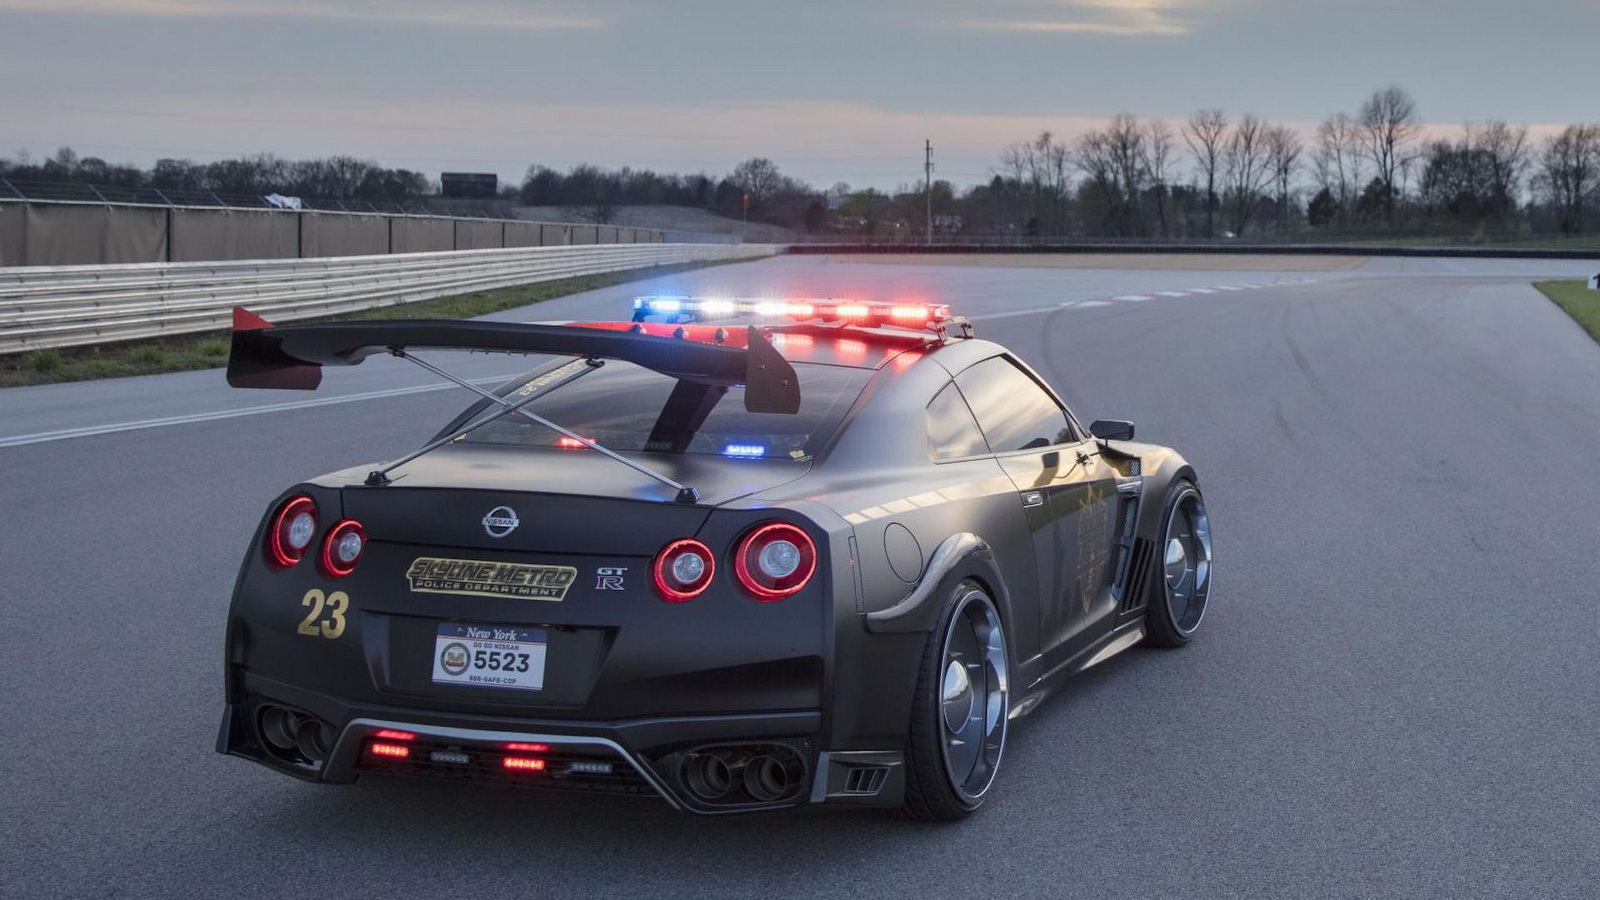 Catch Me If You Can Nissan Gt R Copzilla Police Pursuit Vehicle Forcegt Com